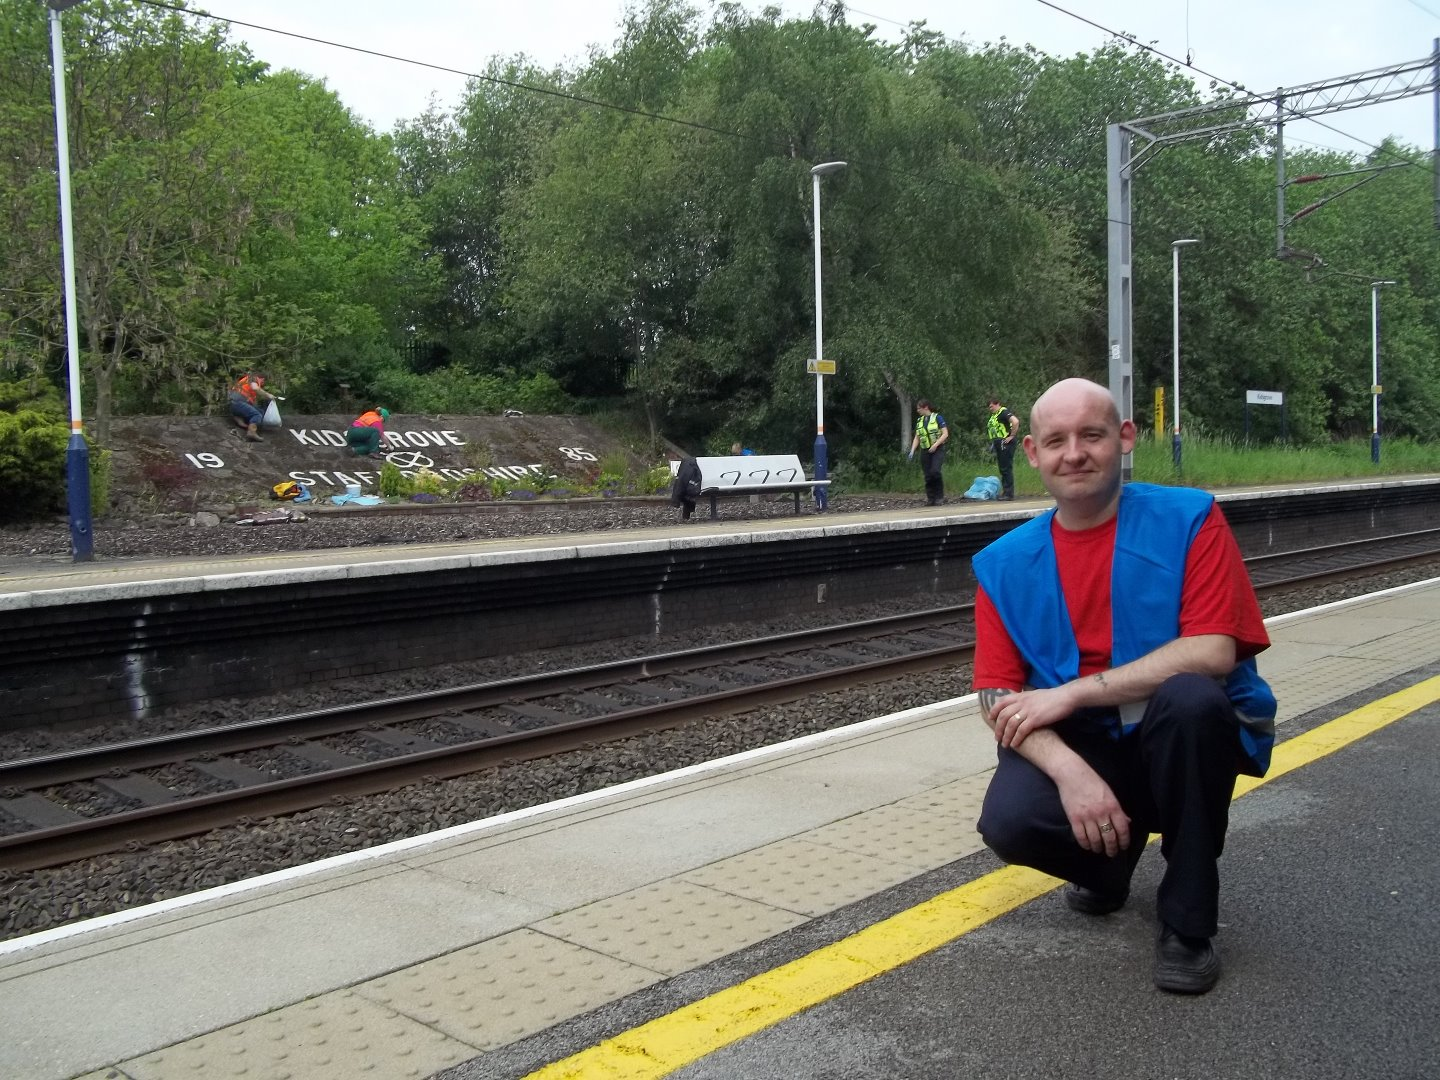 TESCO Community Champion Richard supports Kidsgrove station